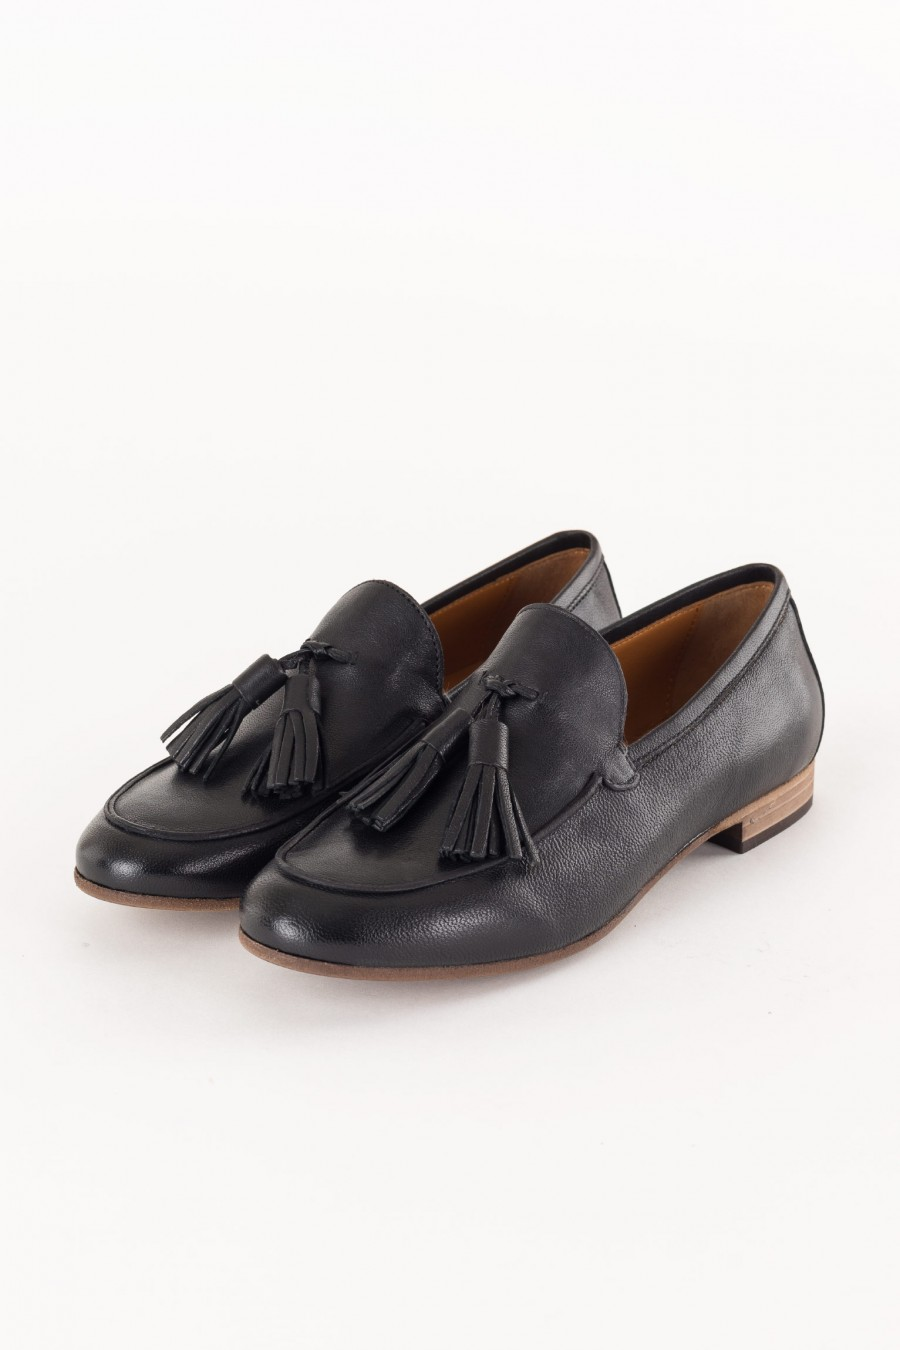 black loafer with tassels